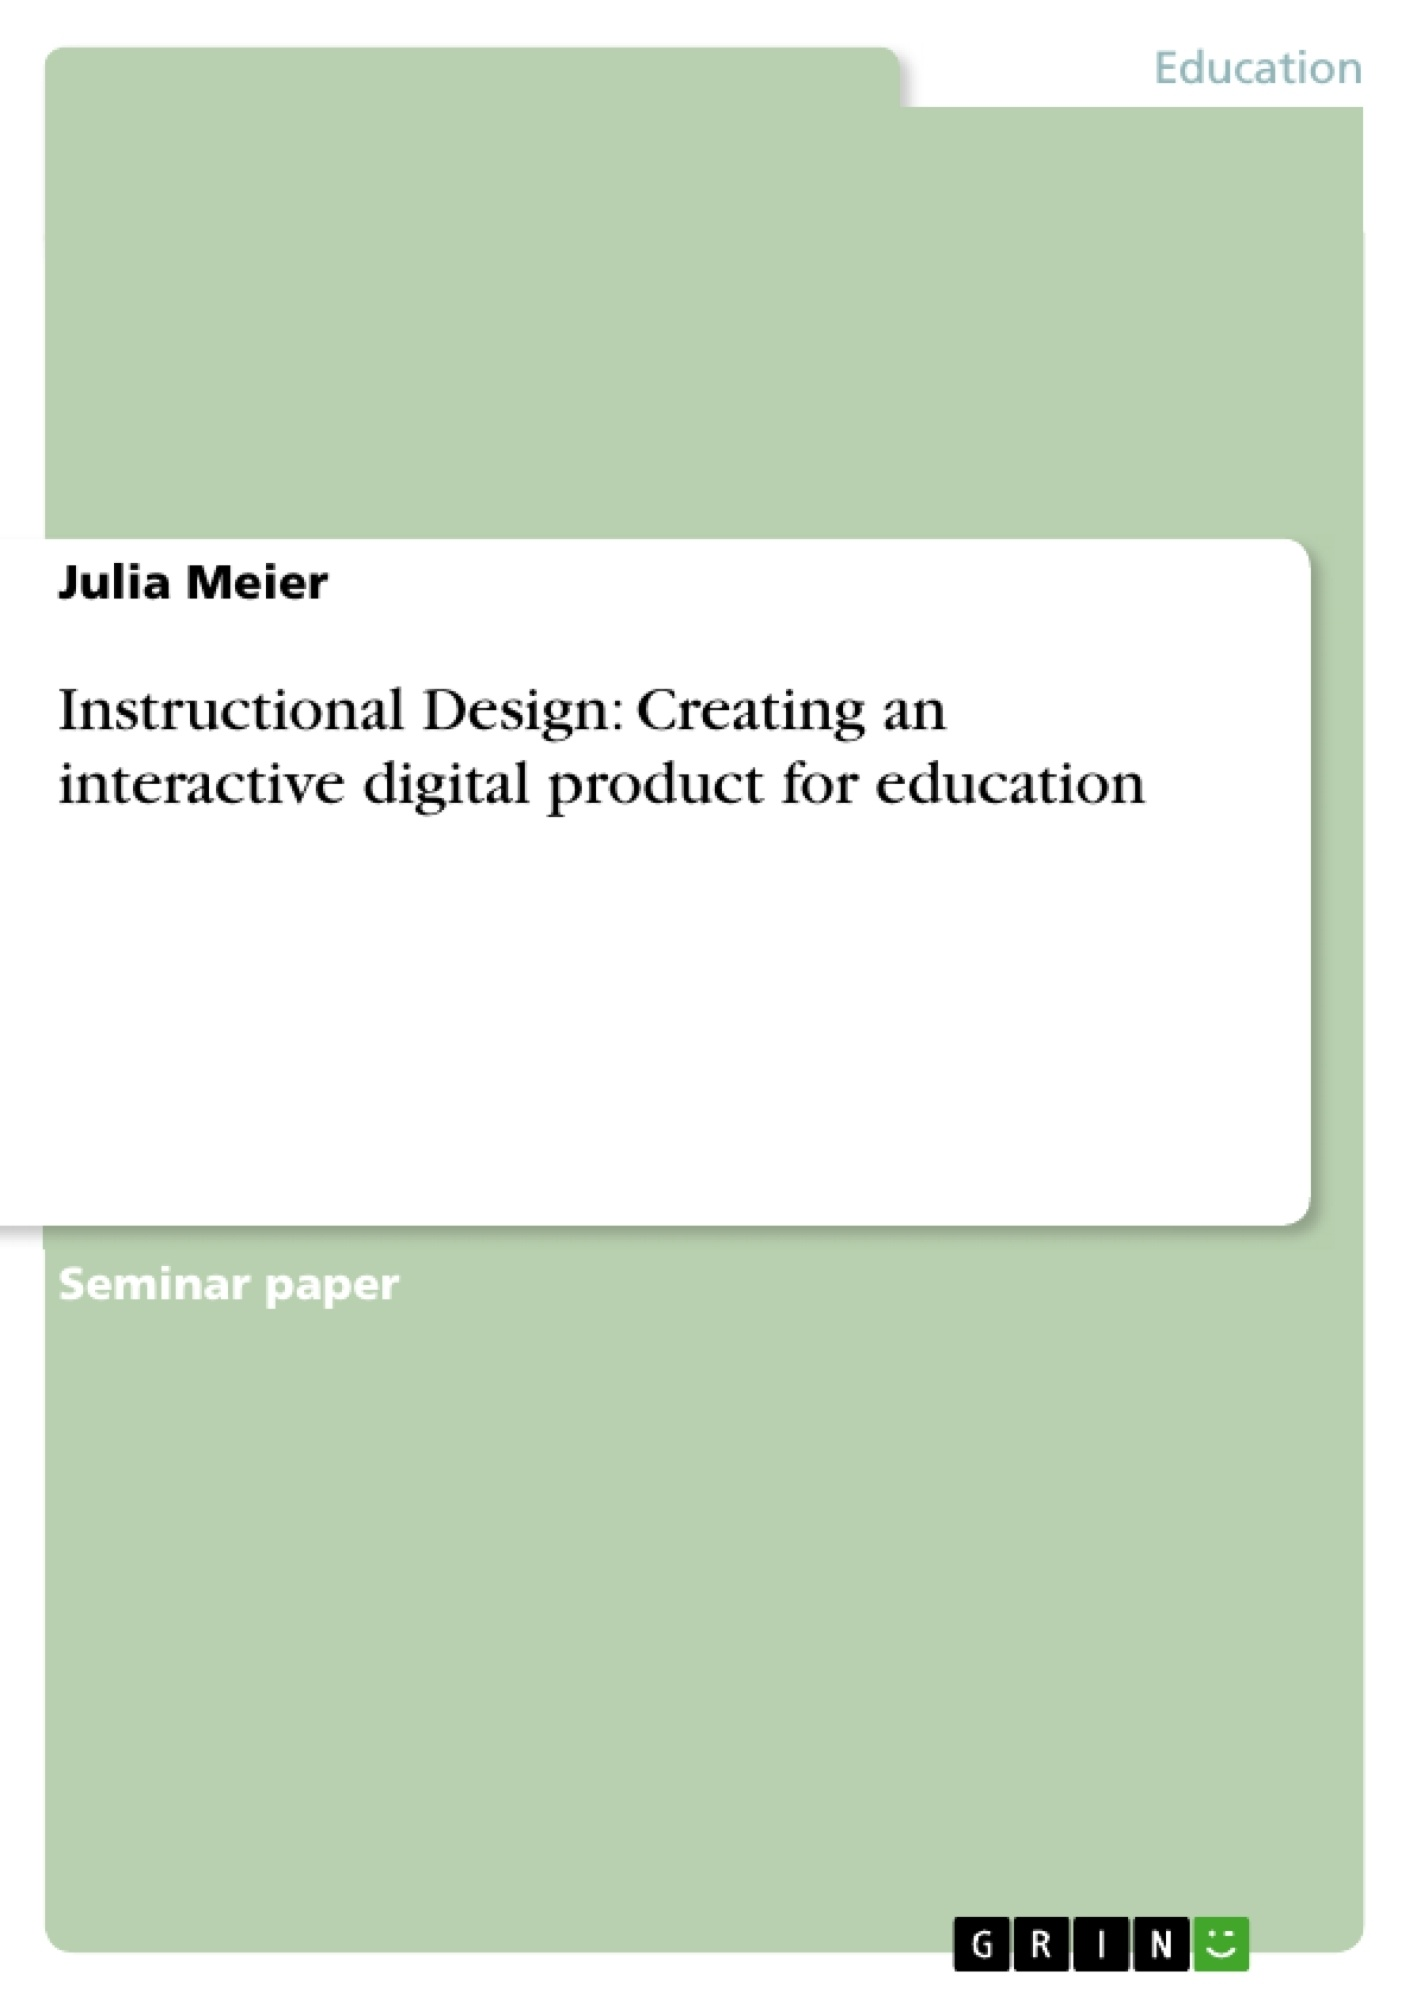 Title: Instructional Design: Creating an interactive digital product for education